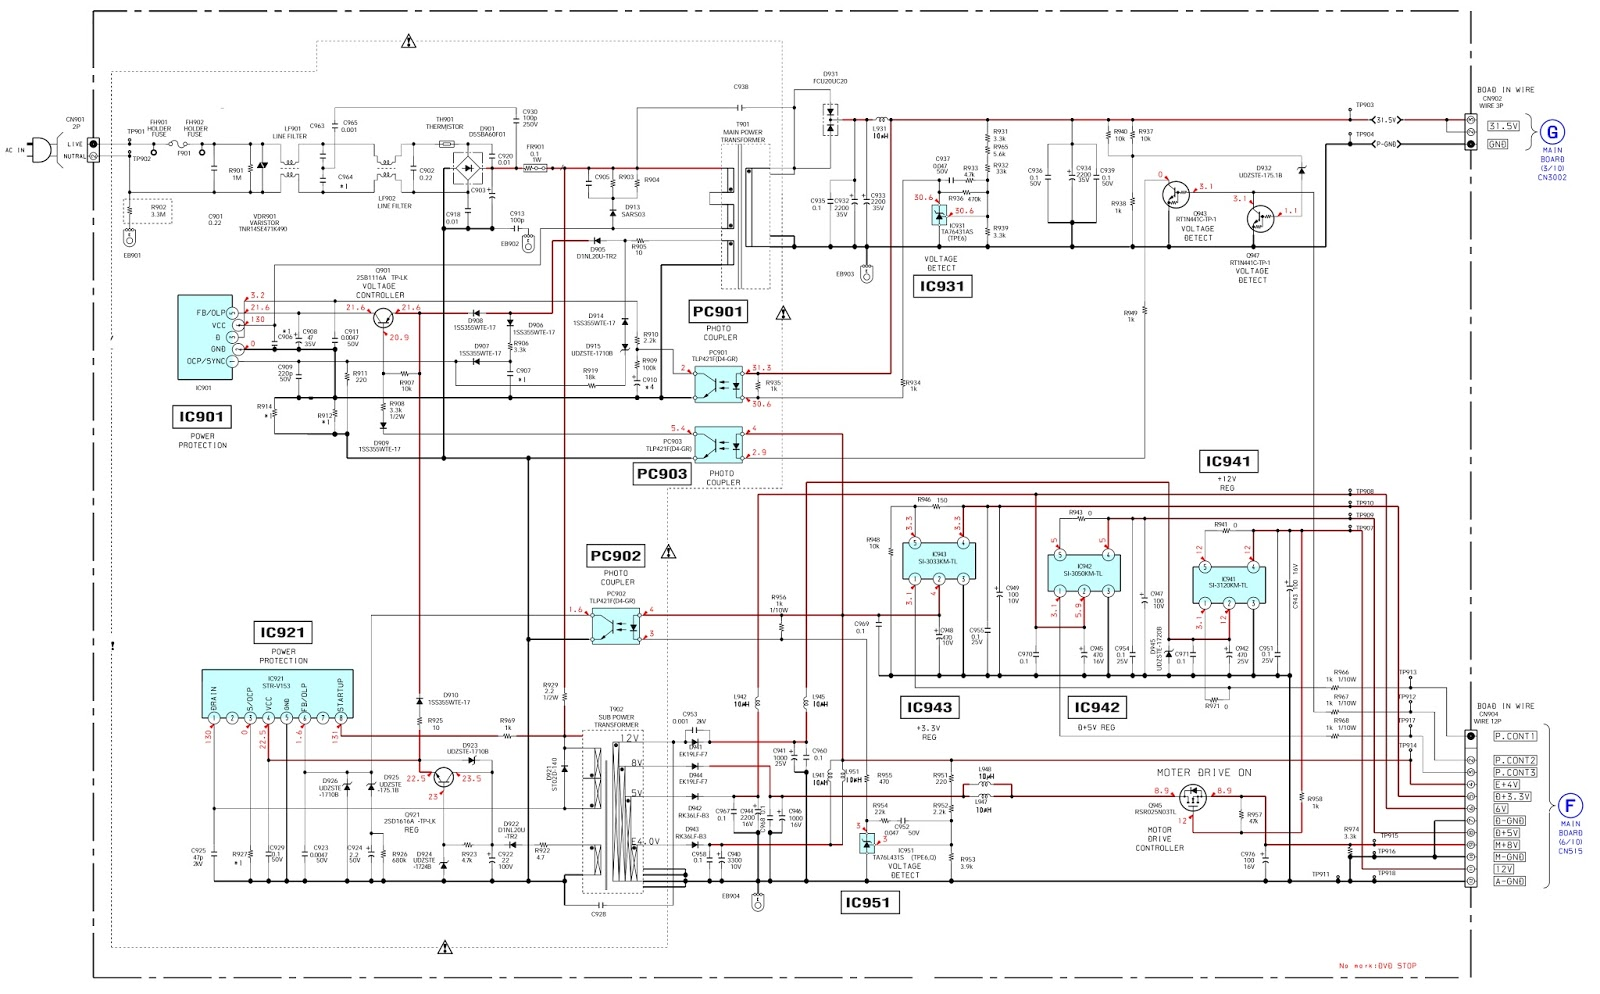 Circuit Diagram Of Home Theater Process Template Excel Sony System Dav Dz120k Power Supply Schematic Click On The To Zoom Ss At Top Browser Come Back